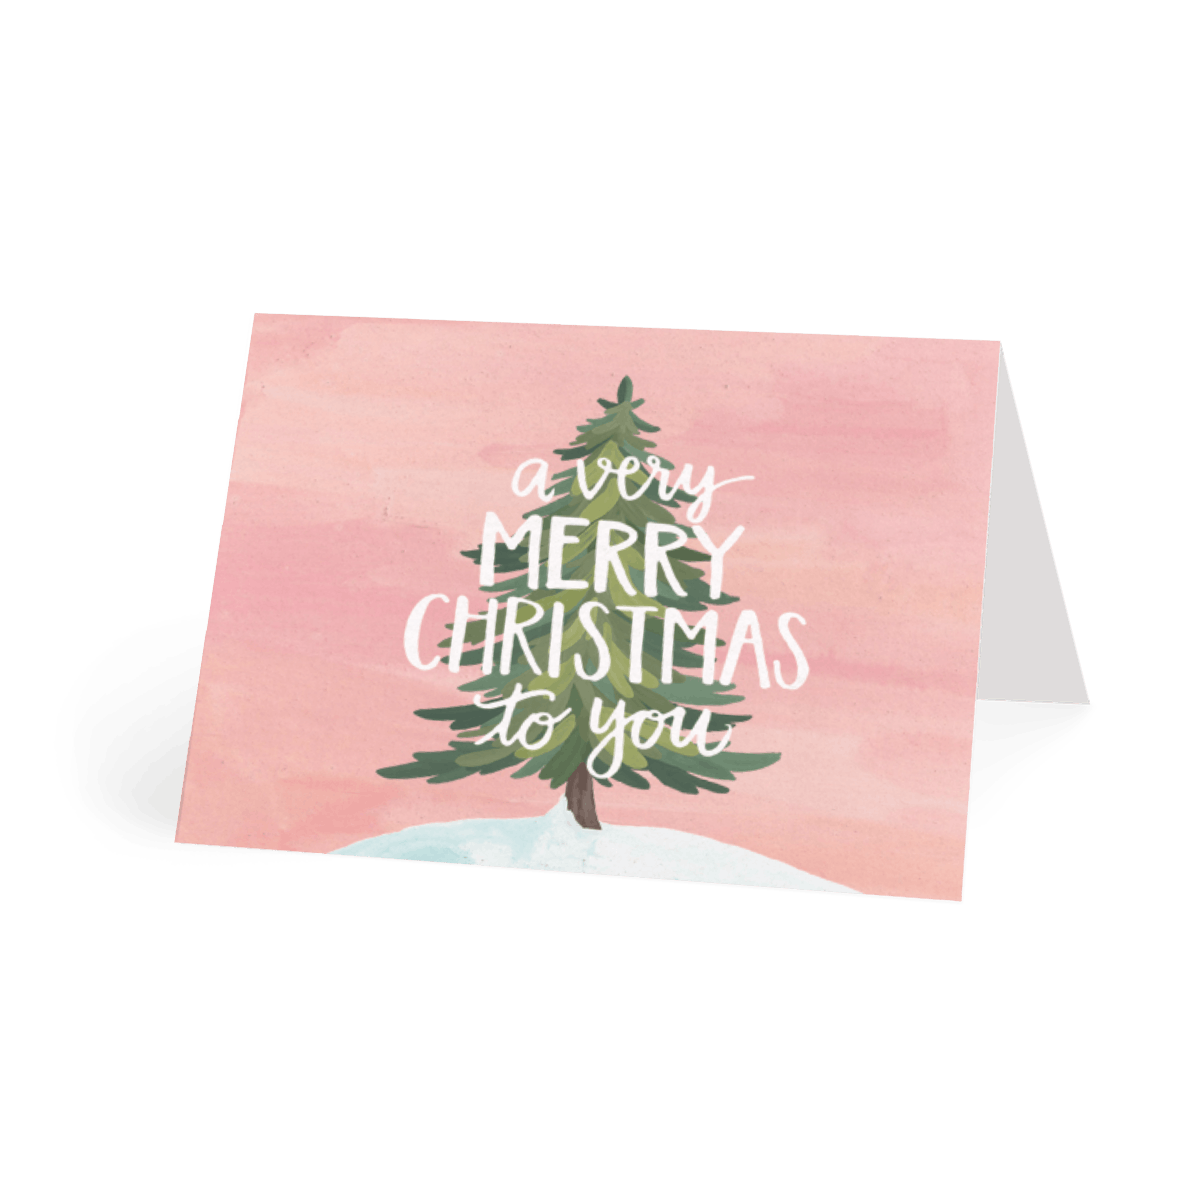 Https%3a%2f%2fwww.papier.com%2fproduct image%2f1486%2f14%2fchristmas tree 411 front 1453909918.png?ixlib=rb 1.1